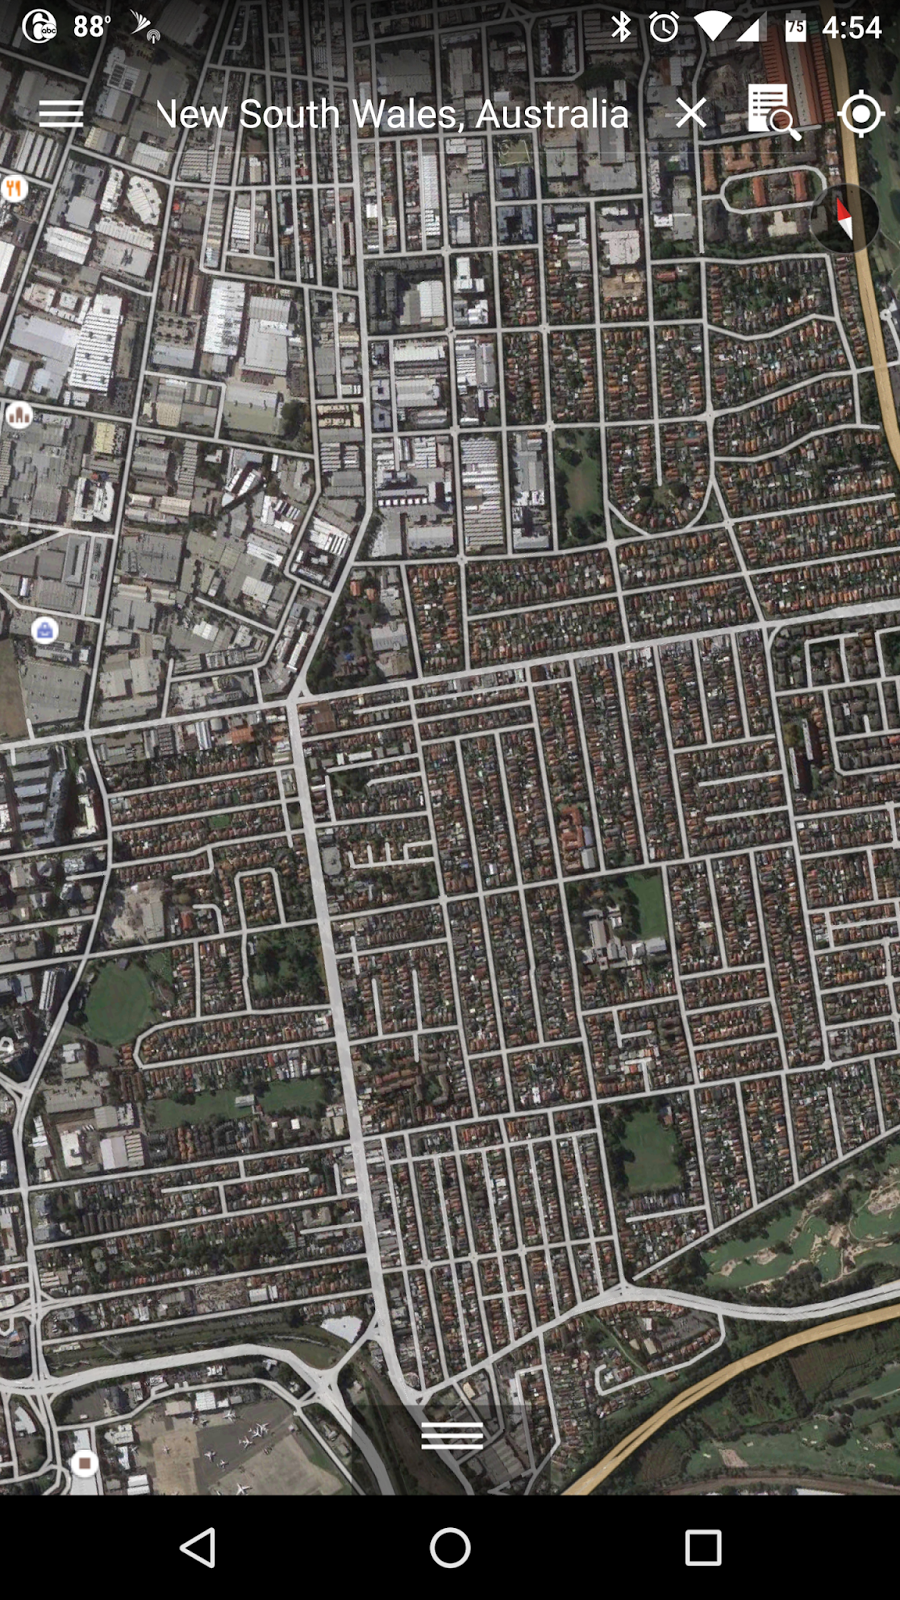 Google Earth Android Support? Not showing streets, towns